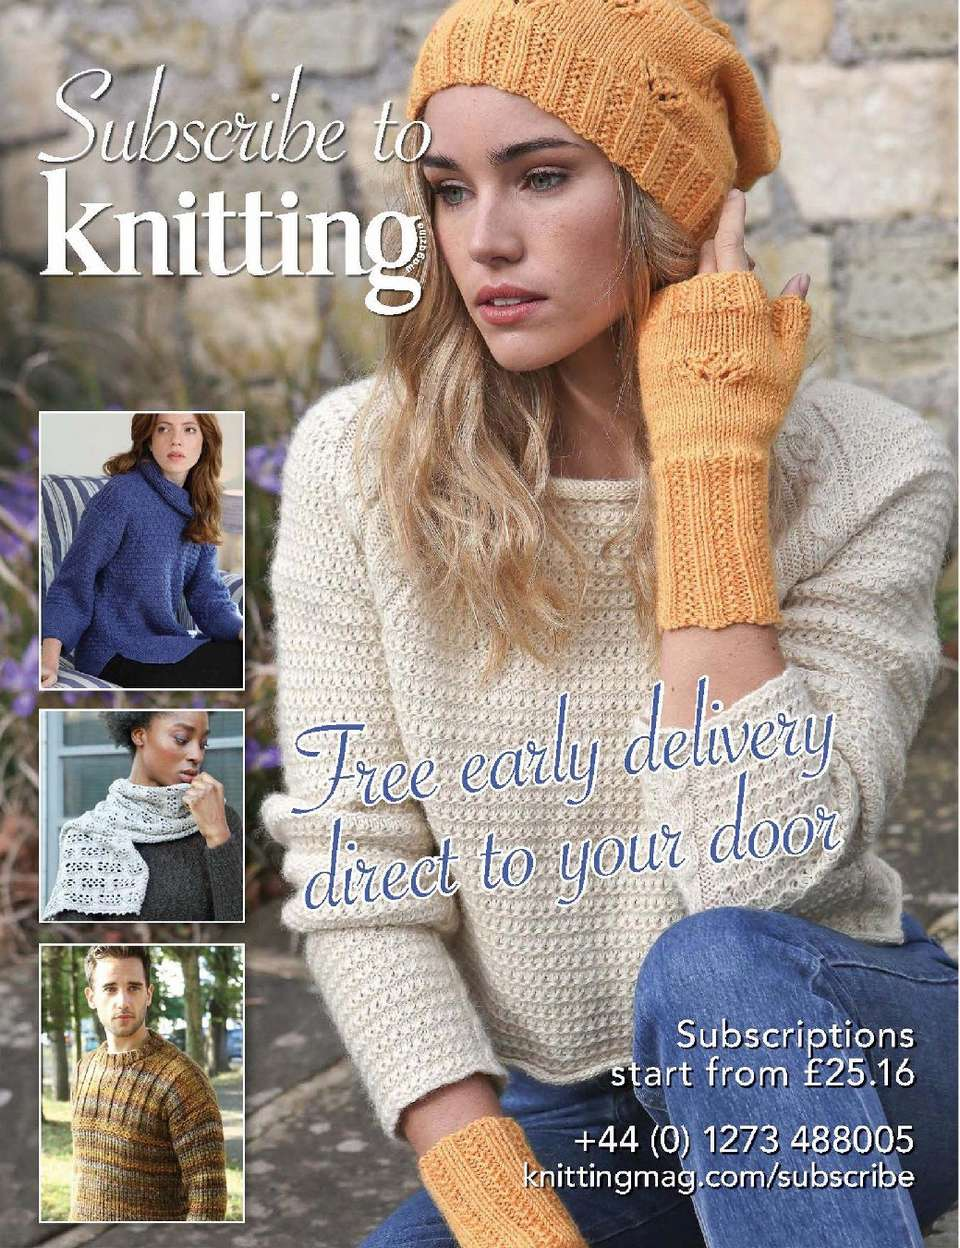 Knitting-177-2018-ng